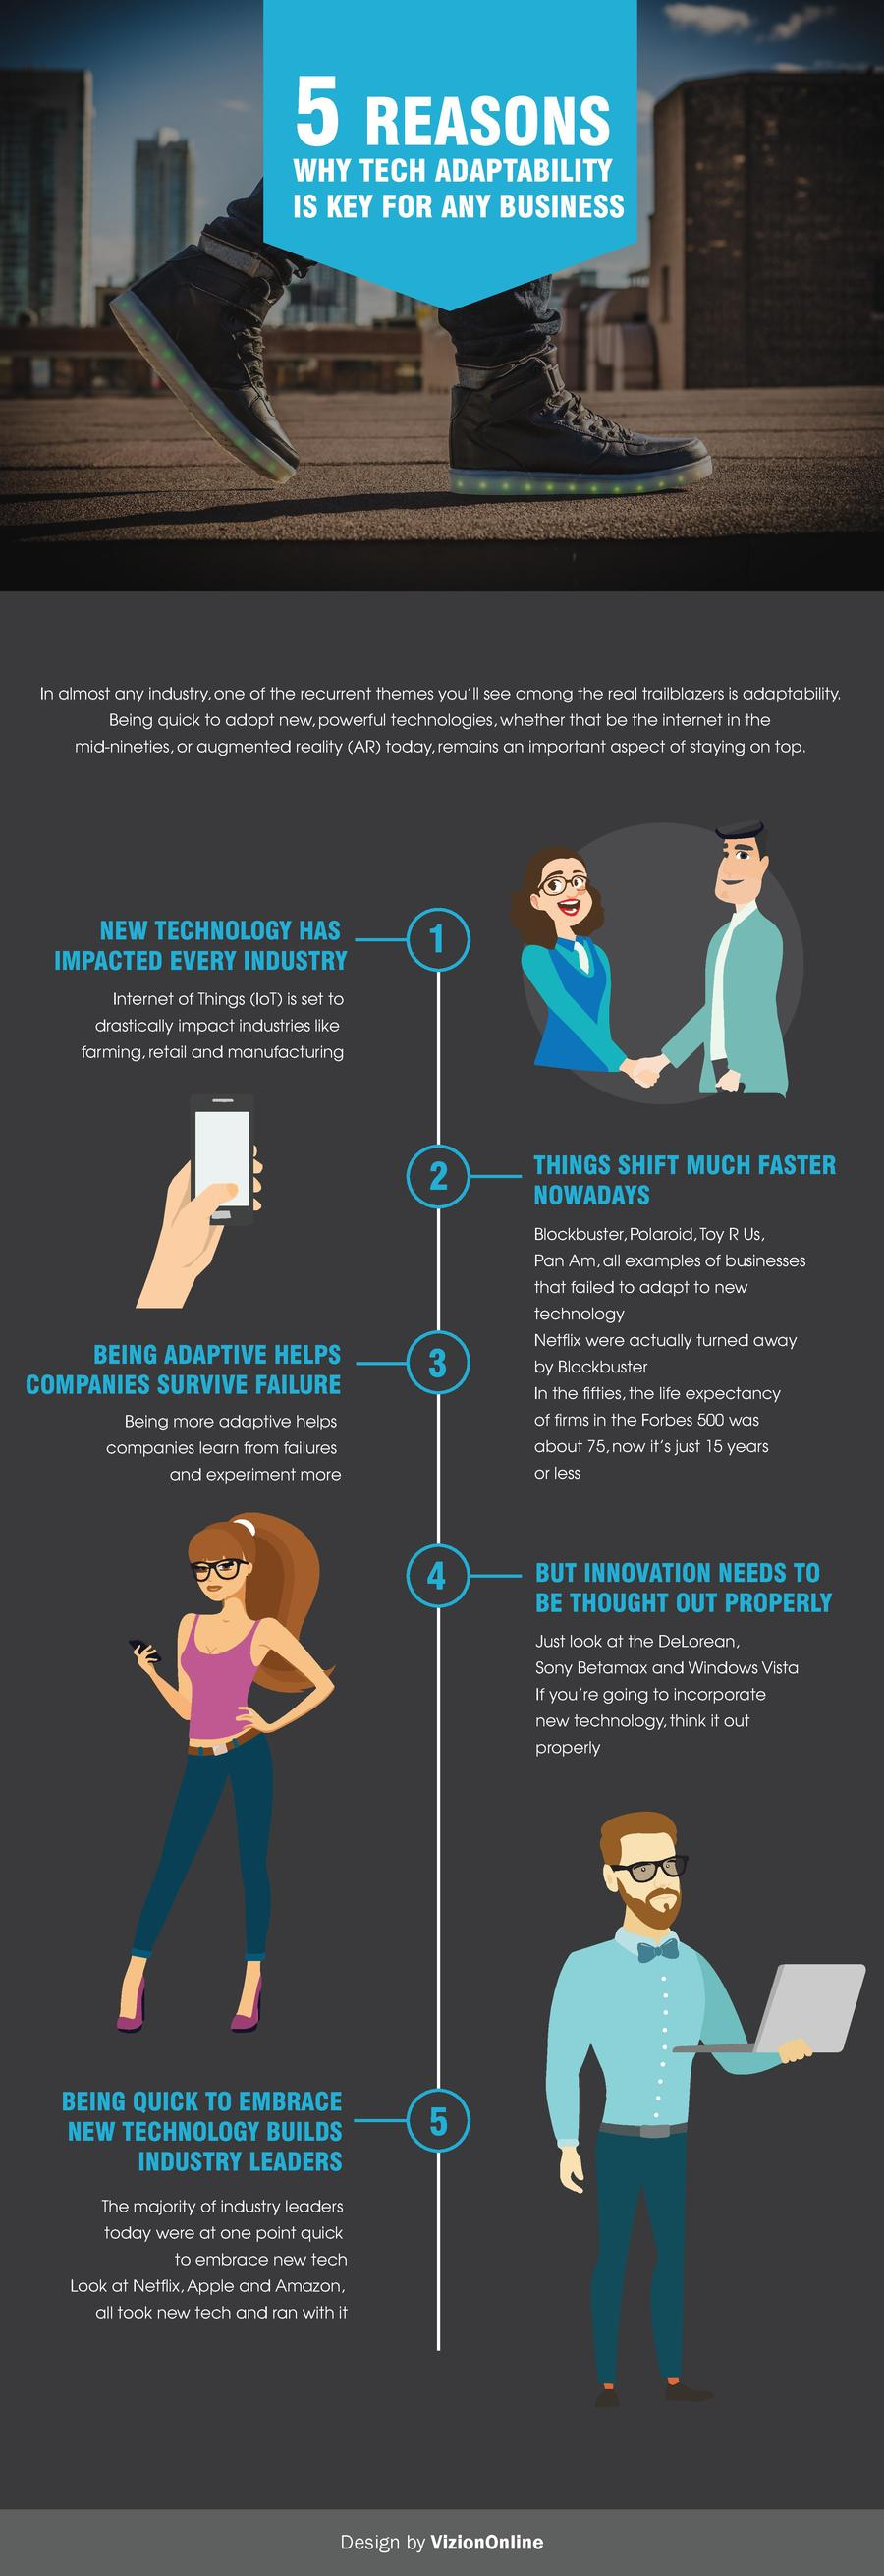 5 Reasons Why Tech Adaptability is Key for Any Business-infographic-plaza